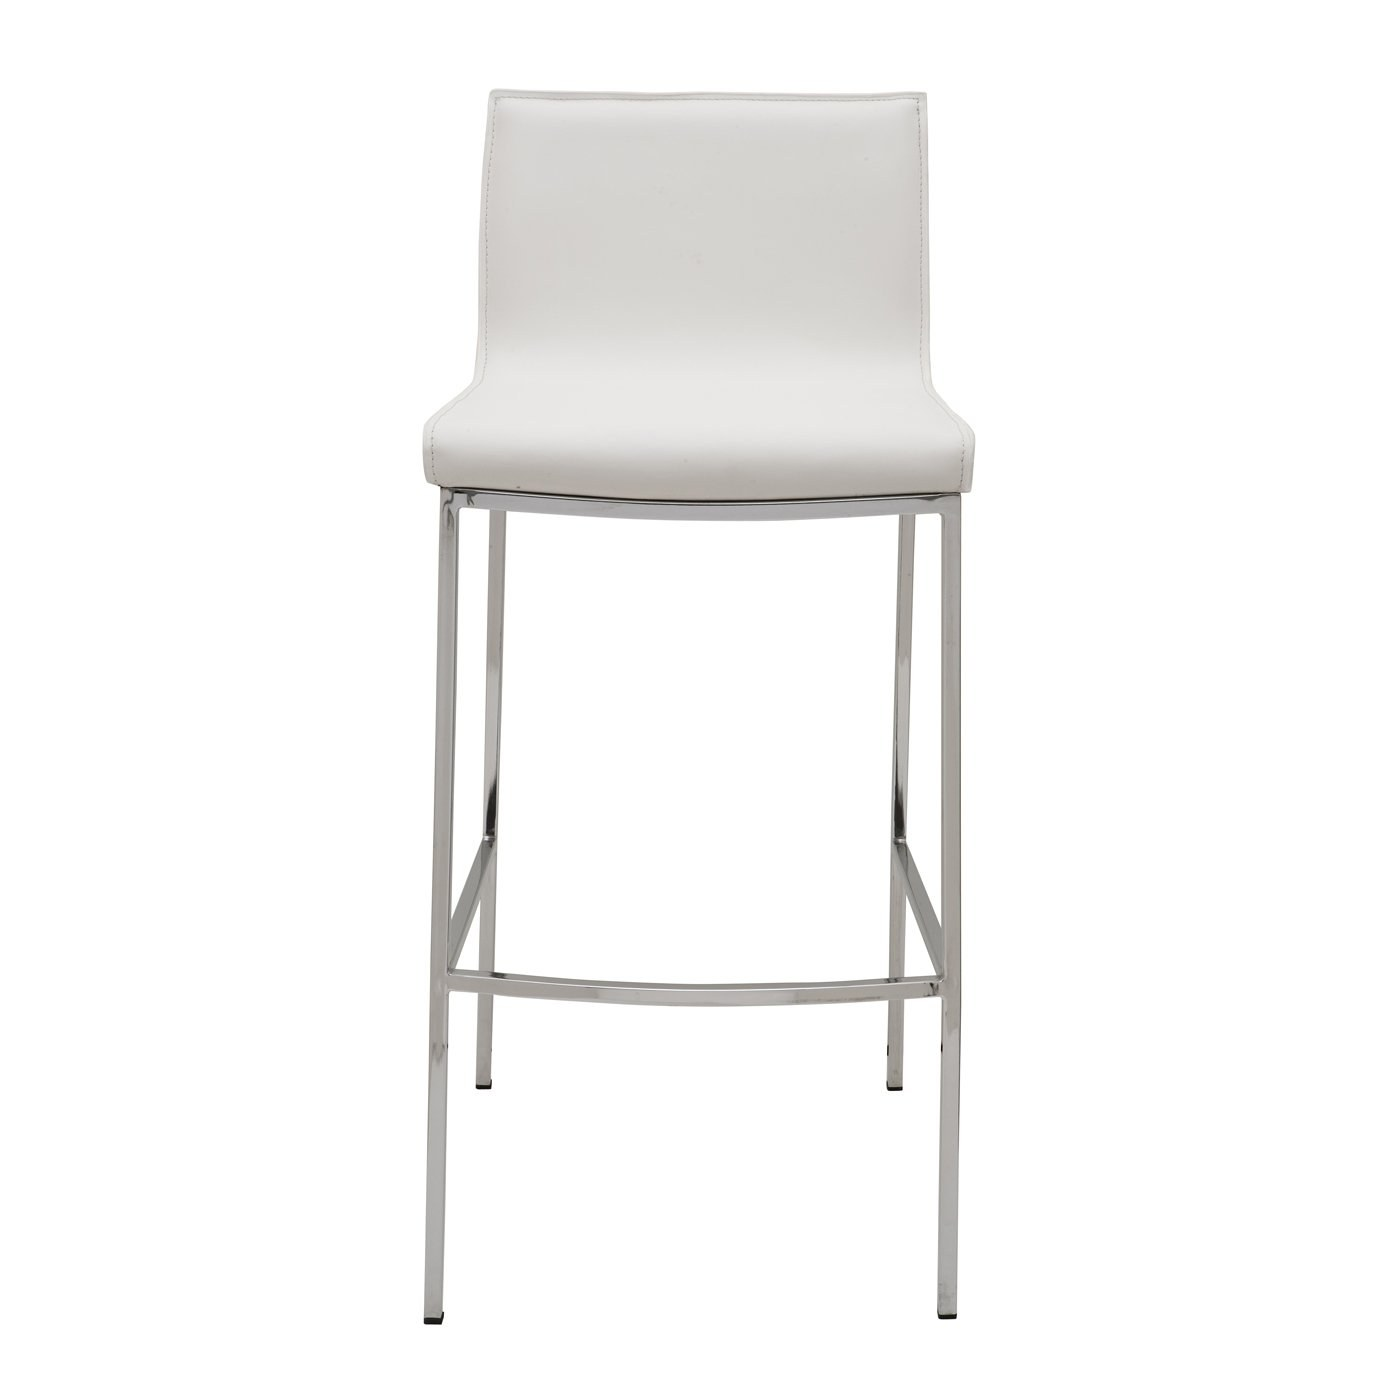 Colter Leather Counter Stool With White Leather Upholstery